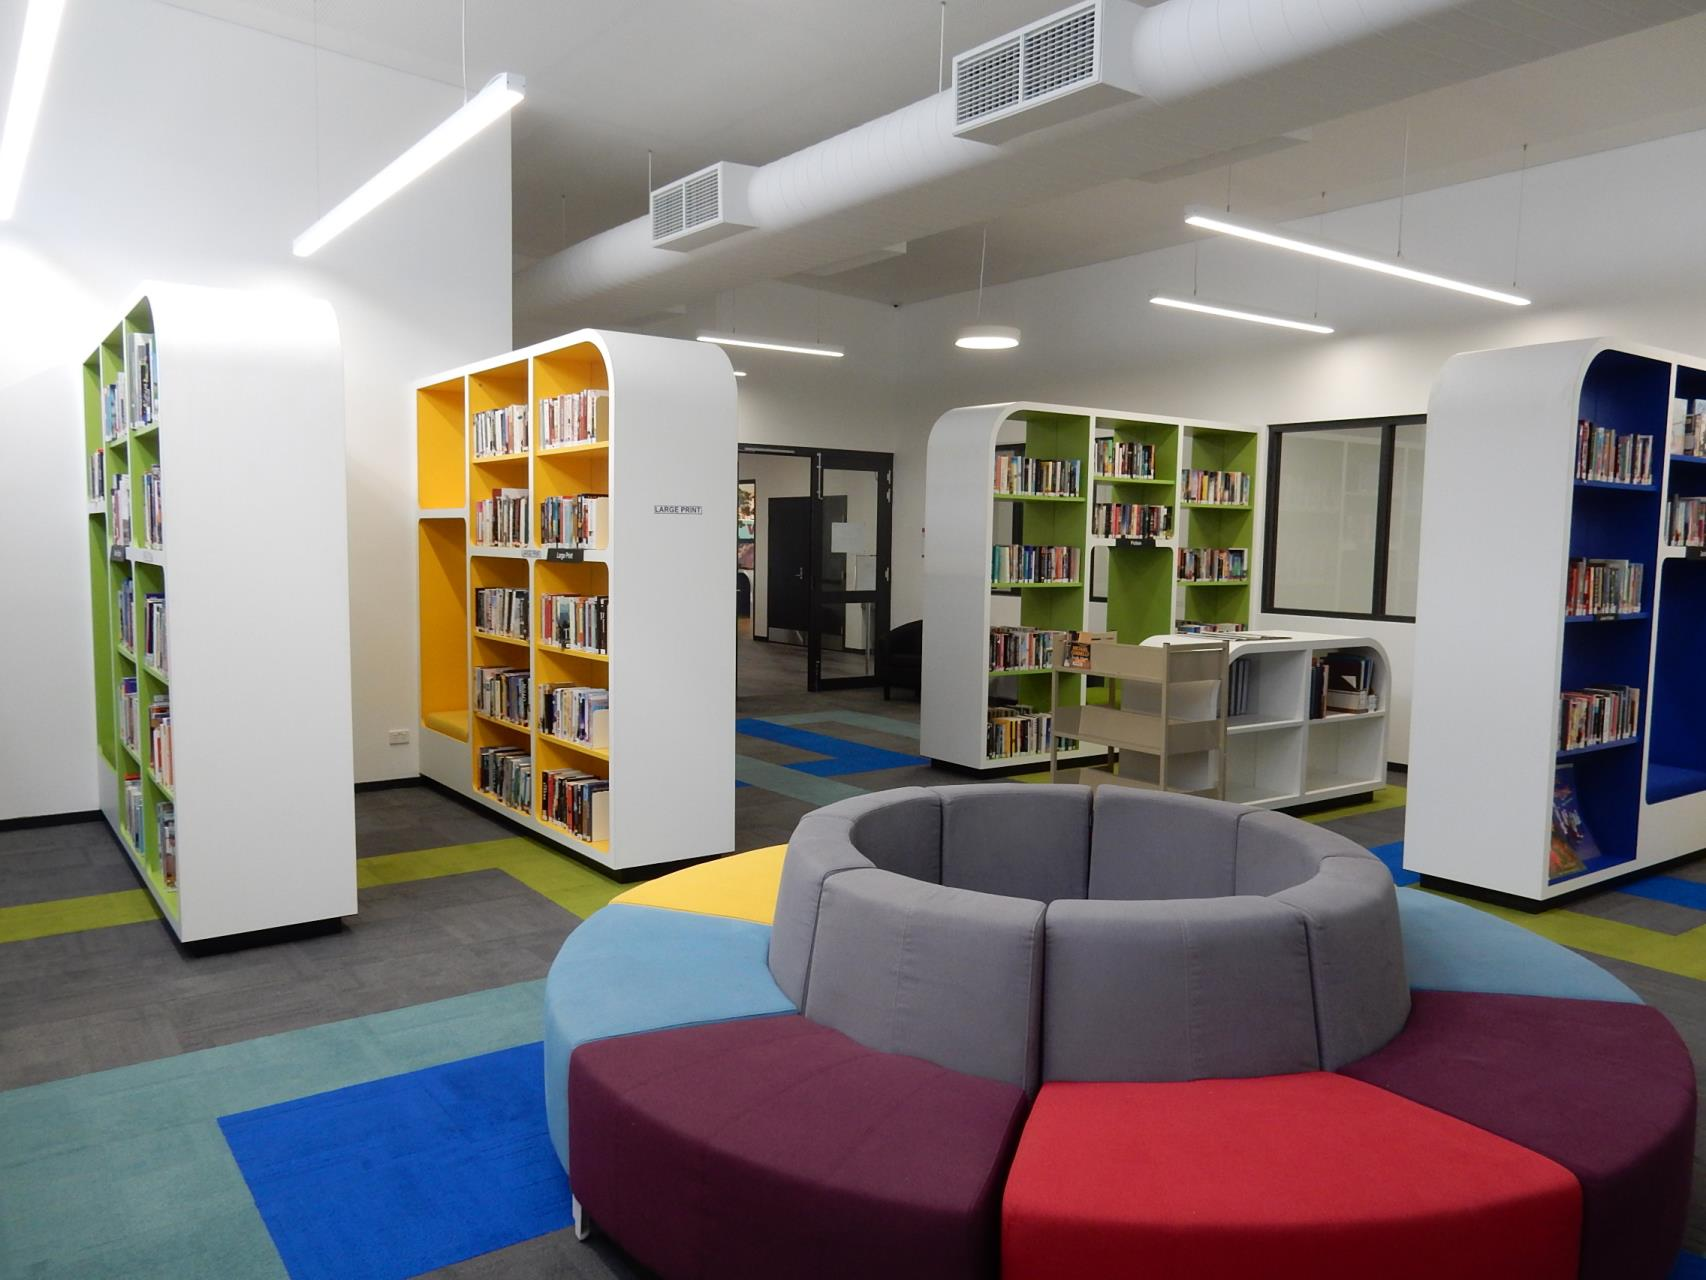 Library Furniture Australia Library Furniture Western Australia Library And Zoo Idoimages Co